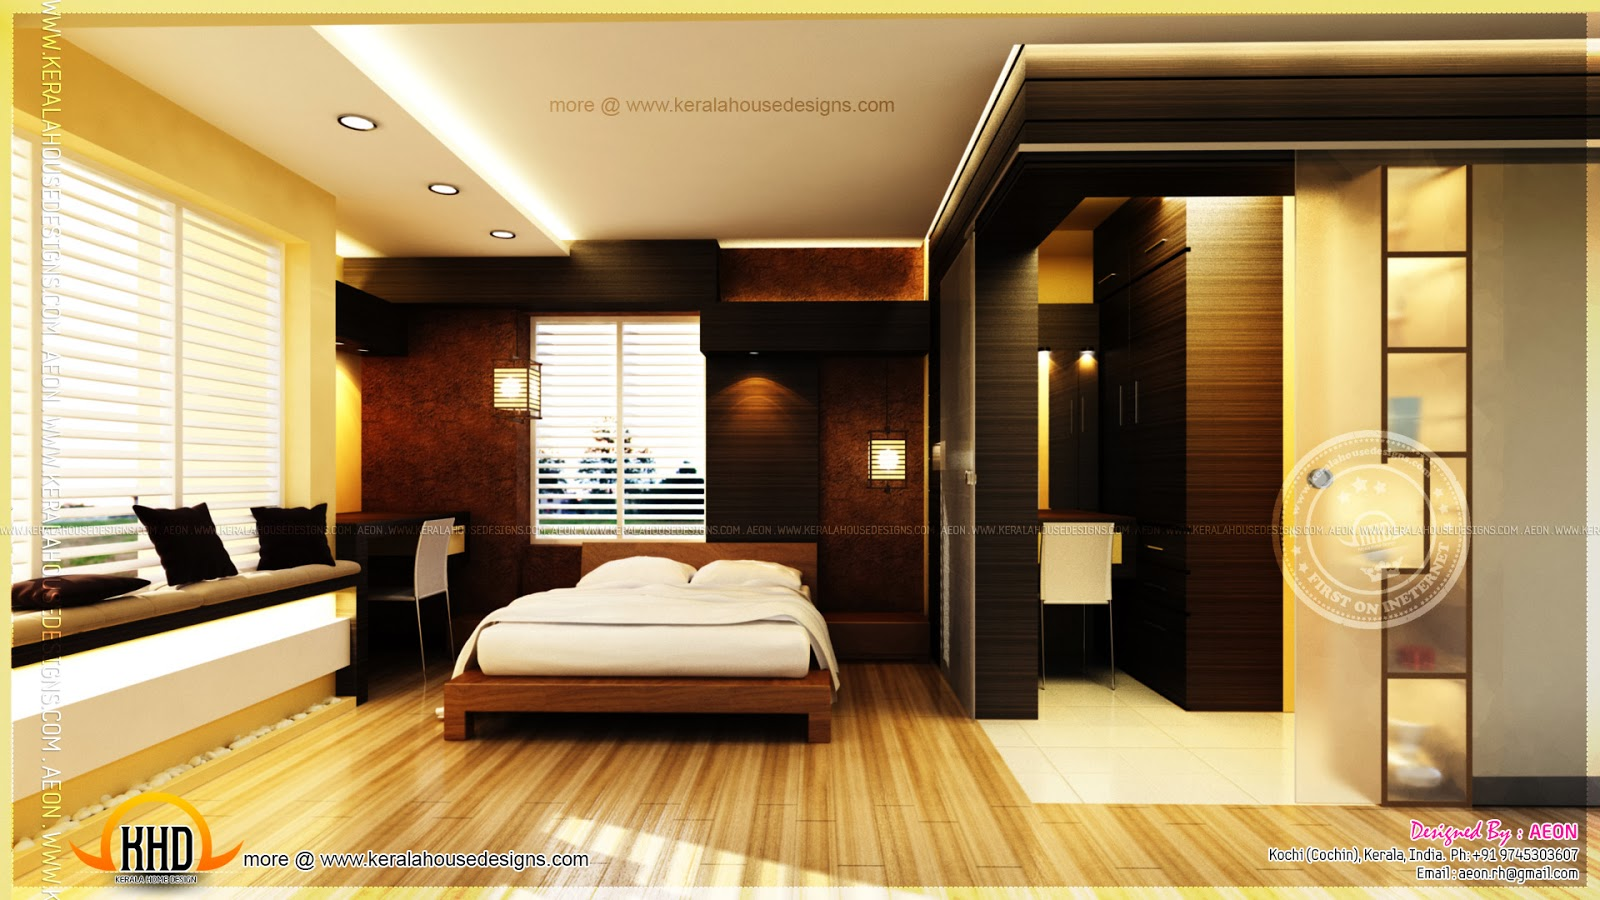 Apartment interior designs by aeon cochin kerala home for Interior design bedroom and bathroom